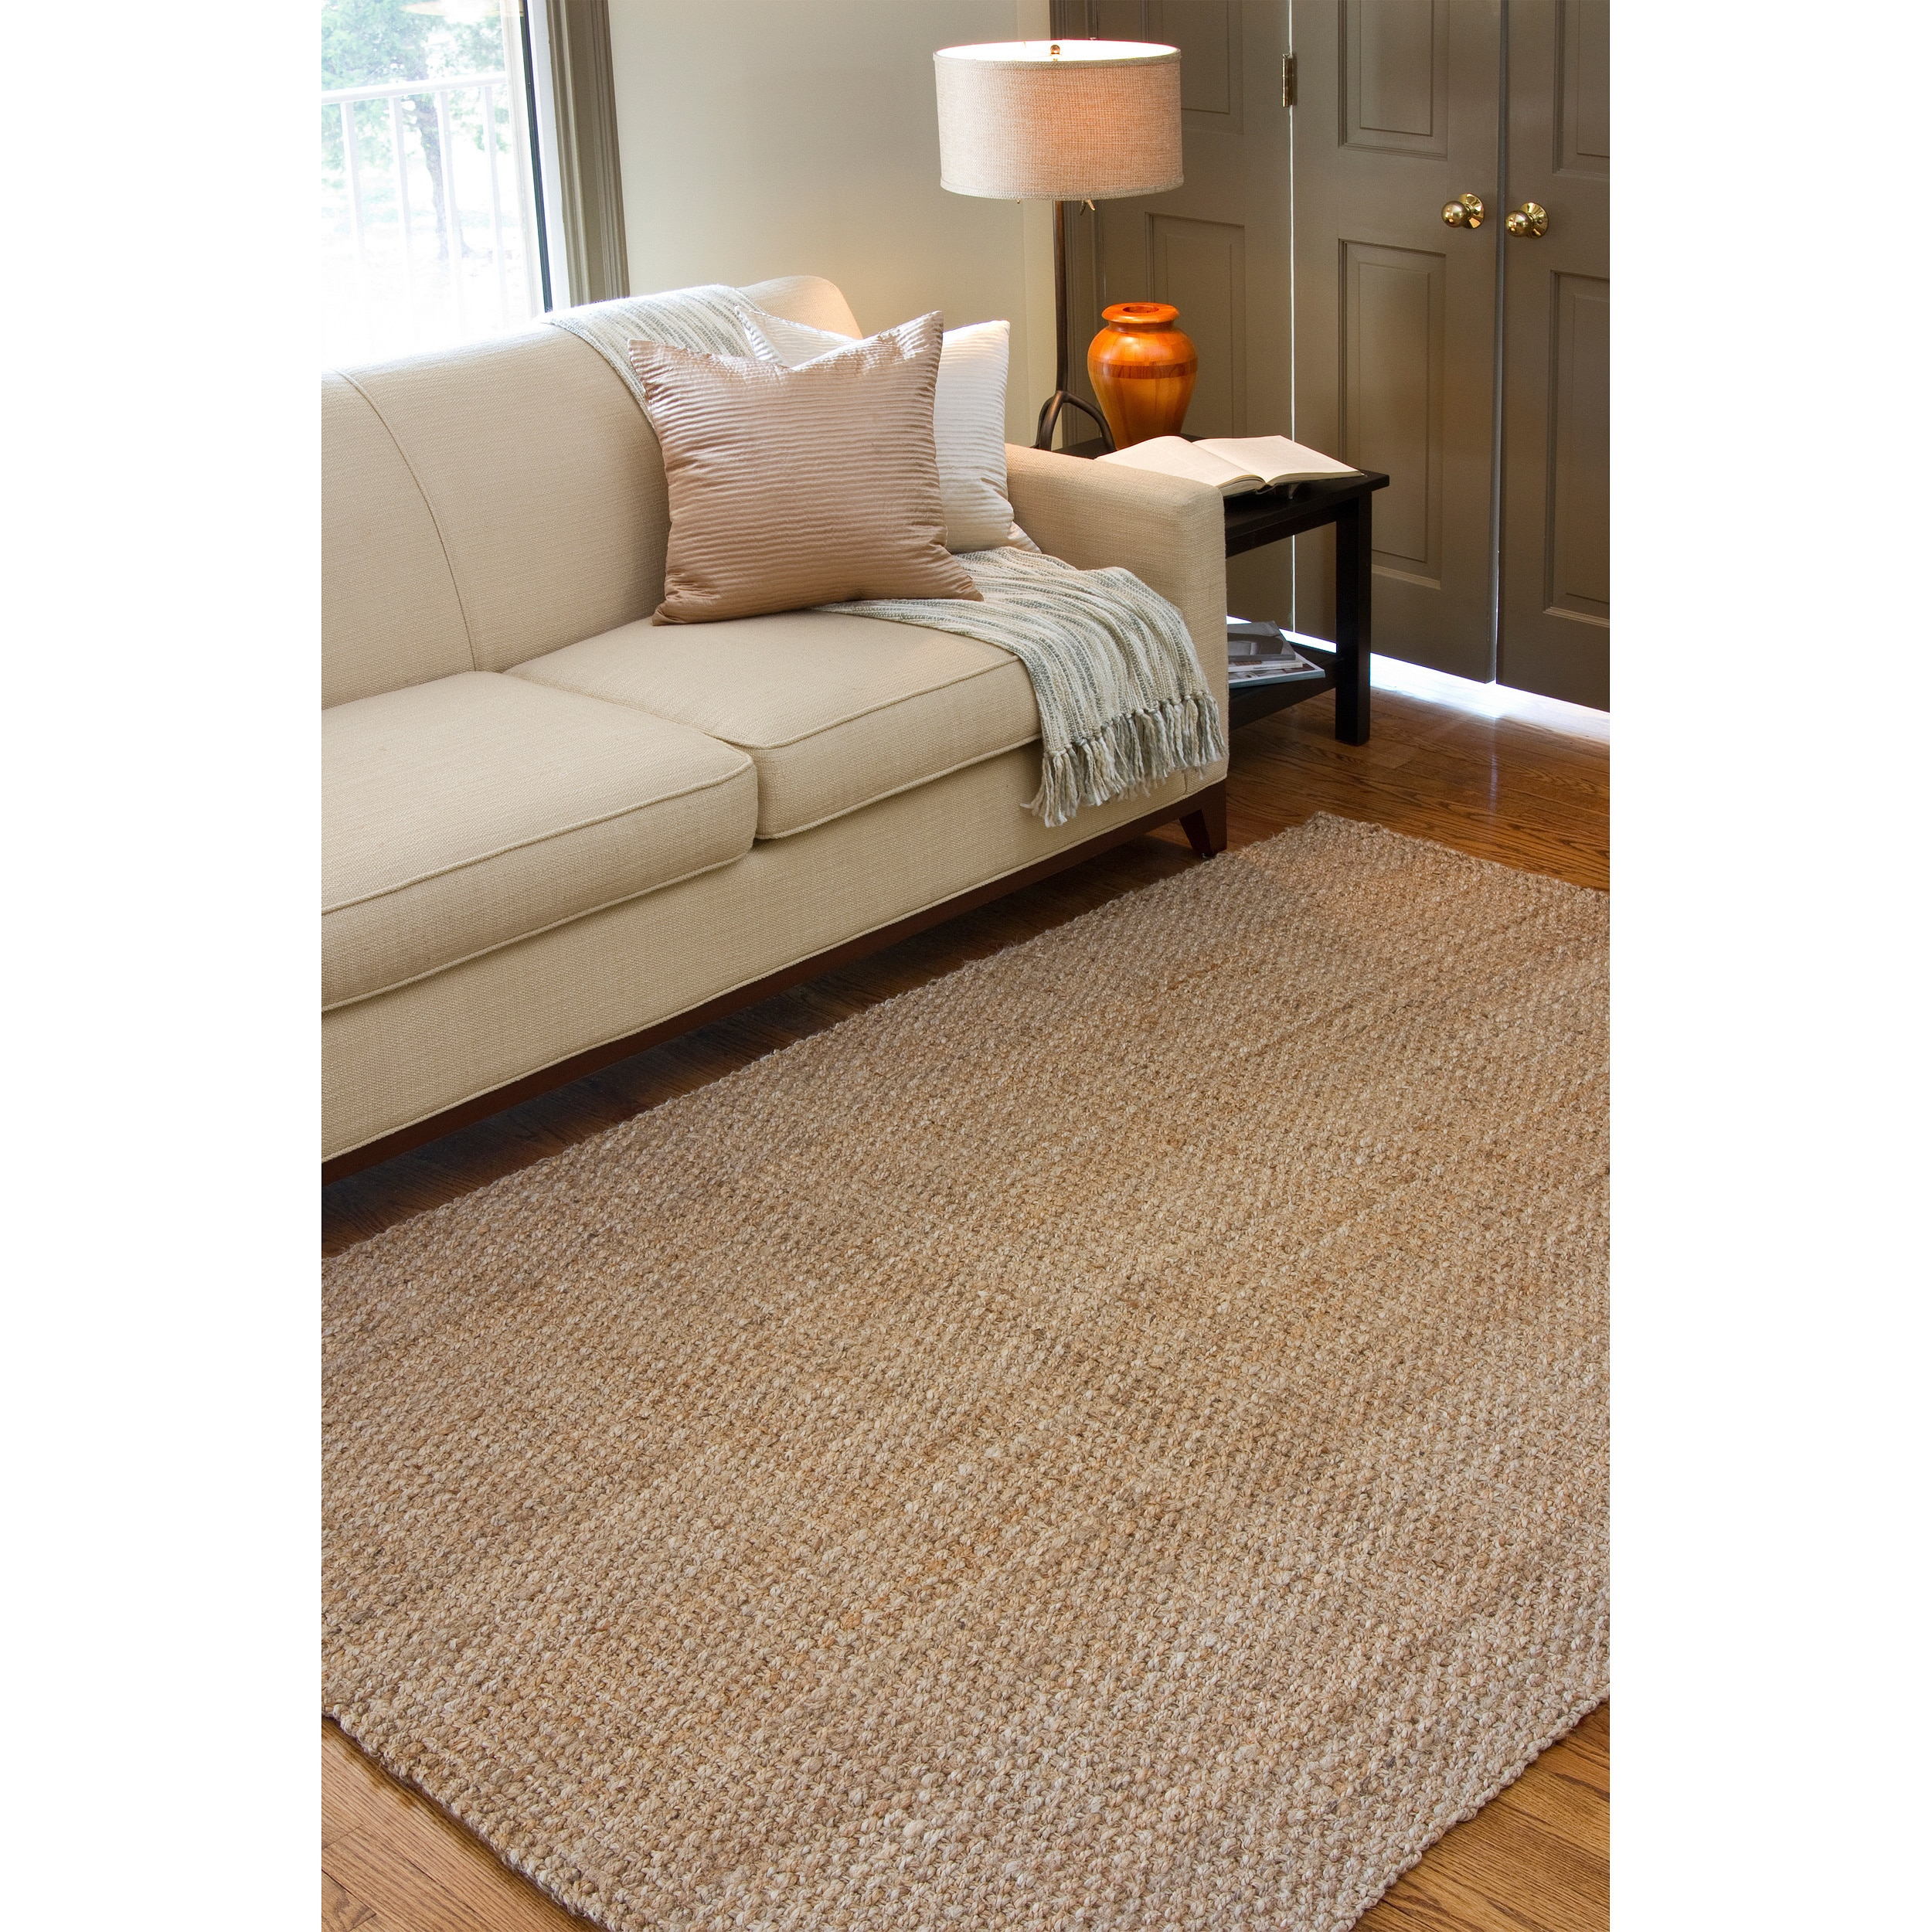 Havenside Home Duck Hand-woven Natural Fiber Jute Rug (5' x 8')